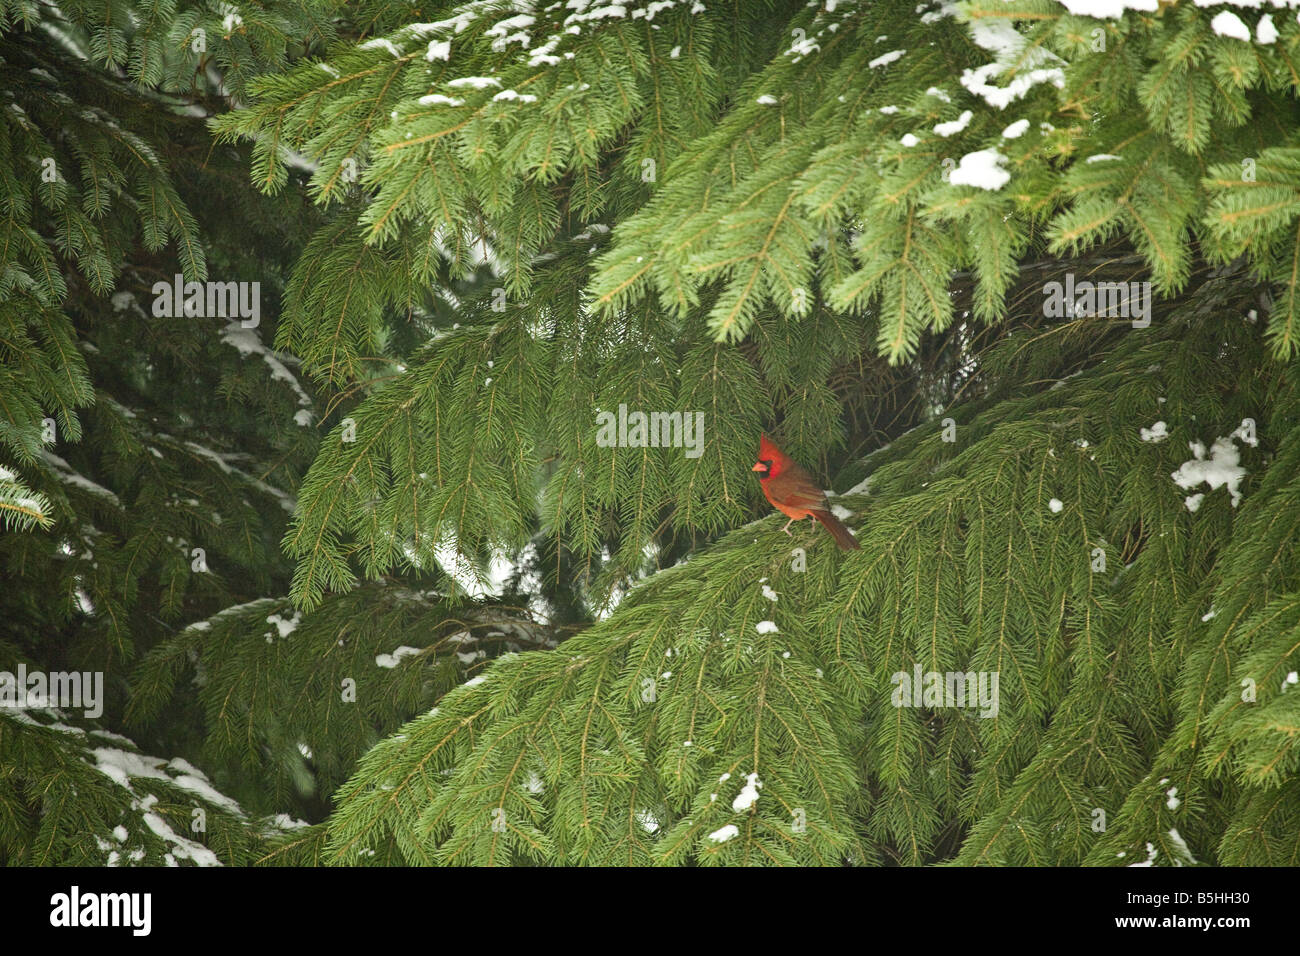 A cardinal sitting on a branch of a pine tree. - Stock Image